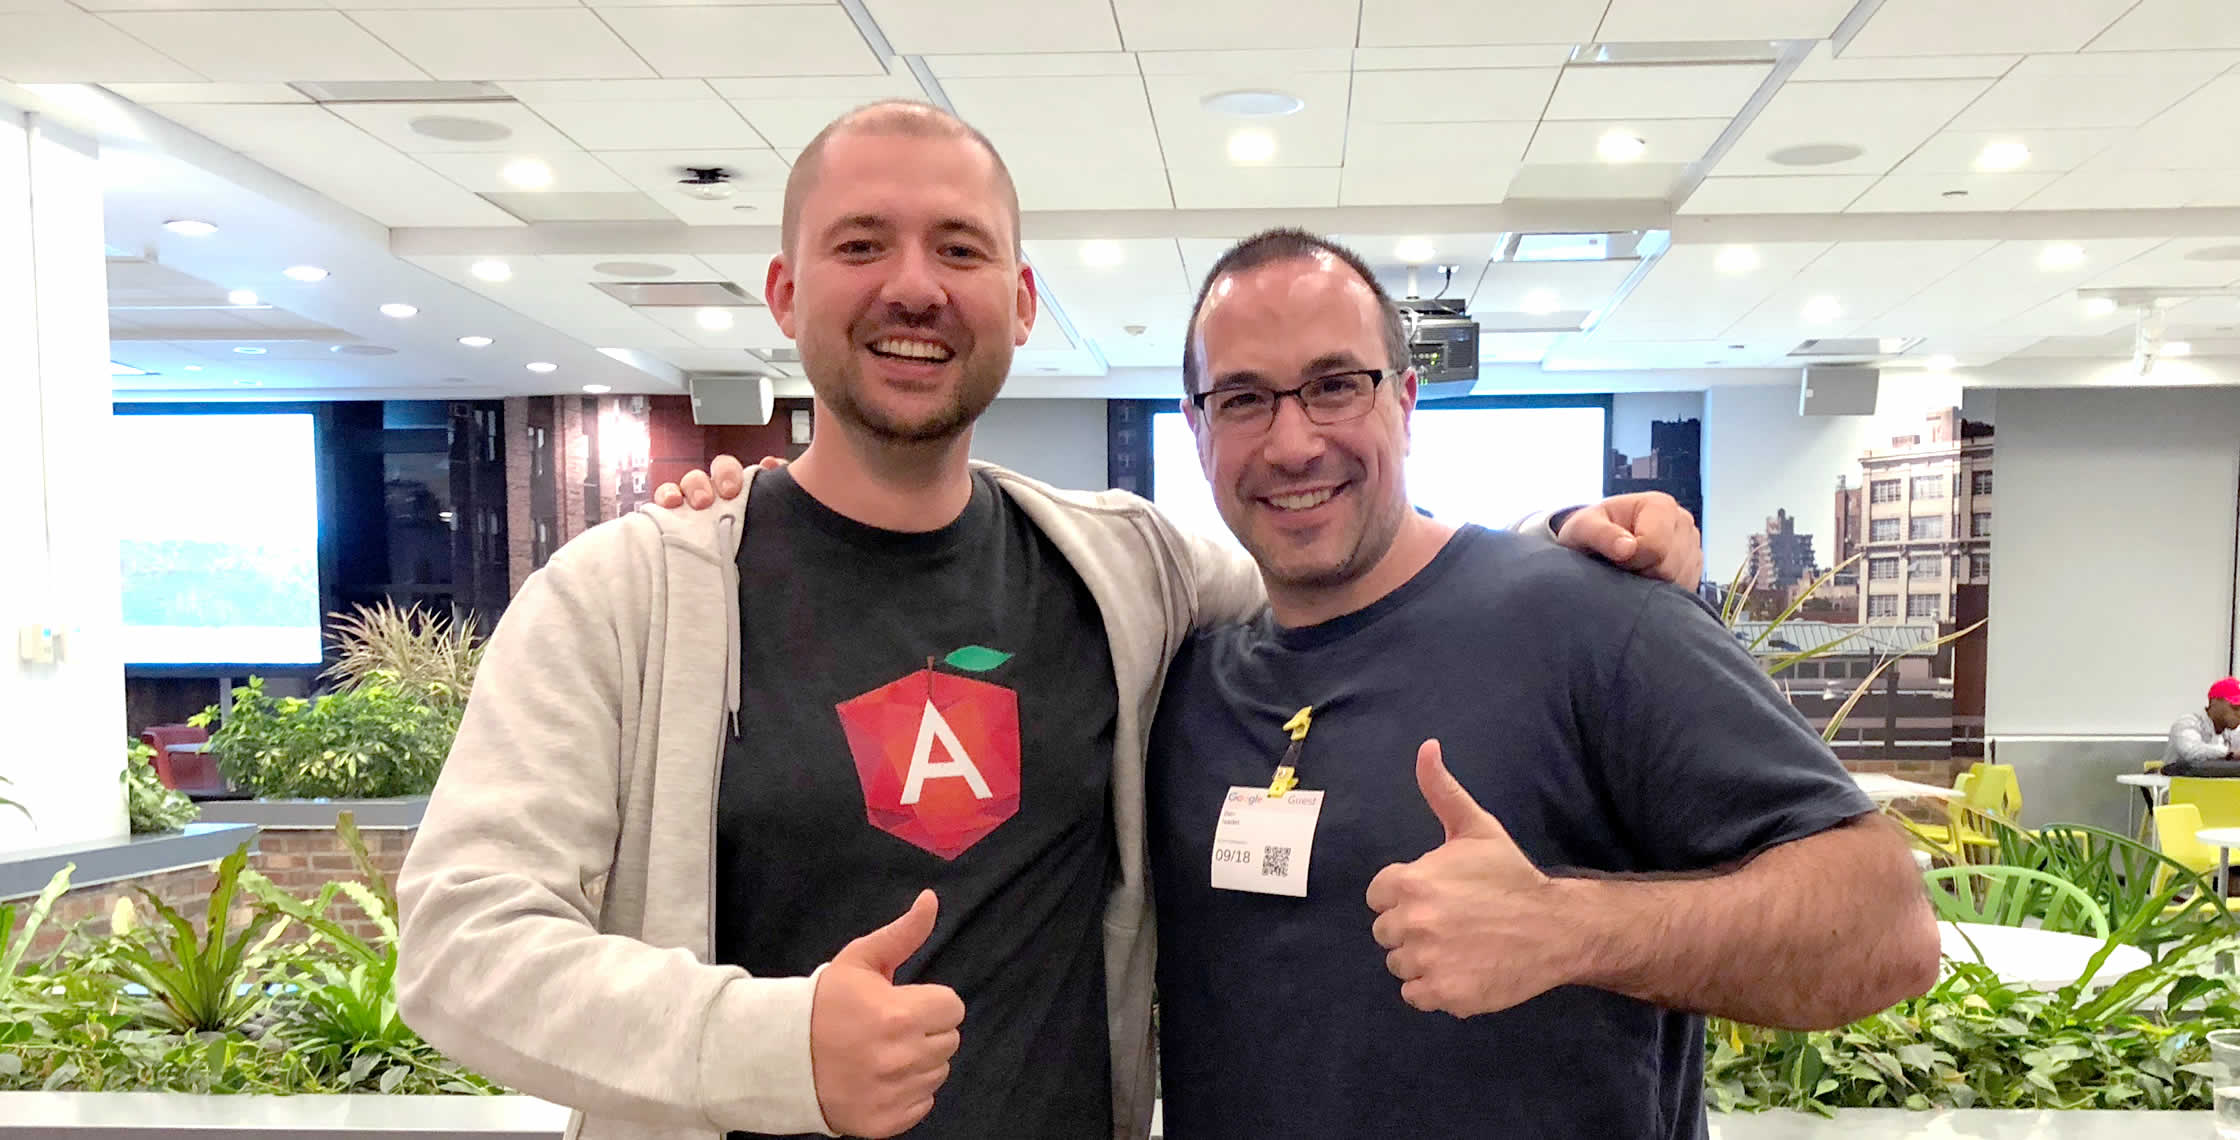 Ben Nadel at the Angular NYC Meetup (Sep. 2018) with: Roman Ilyushin